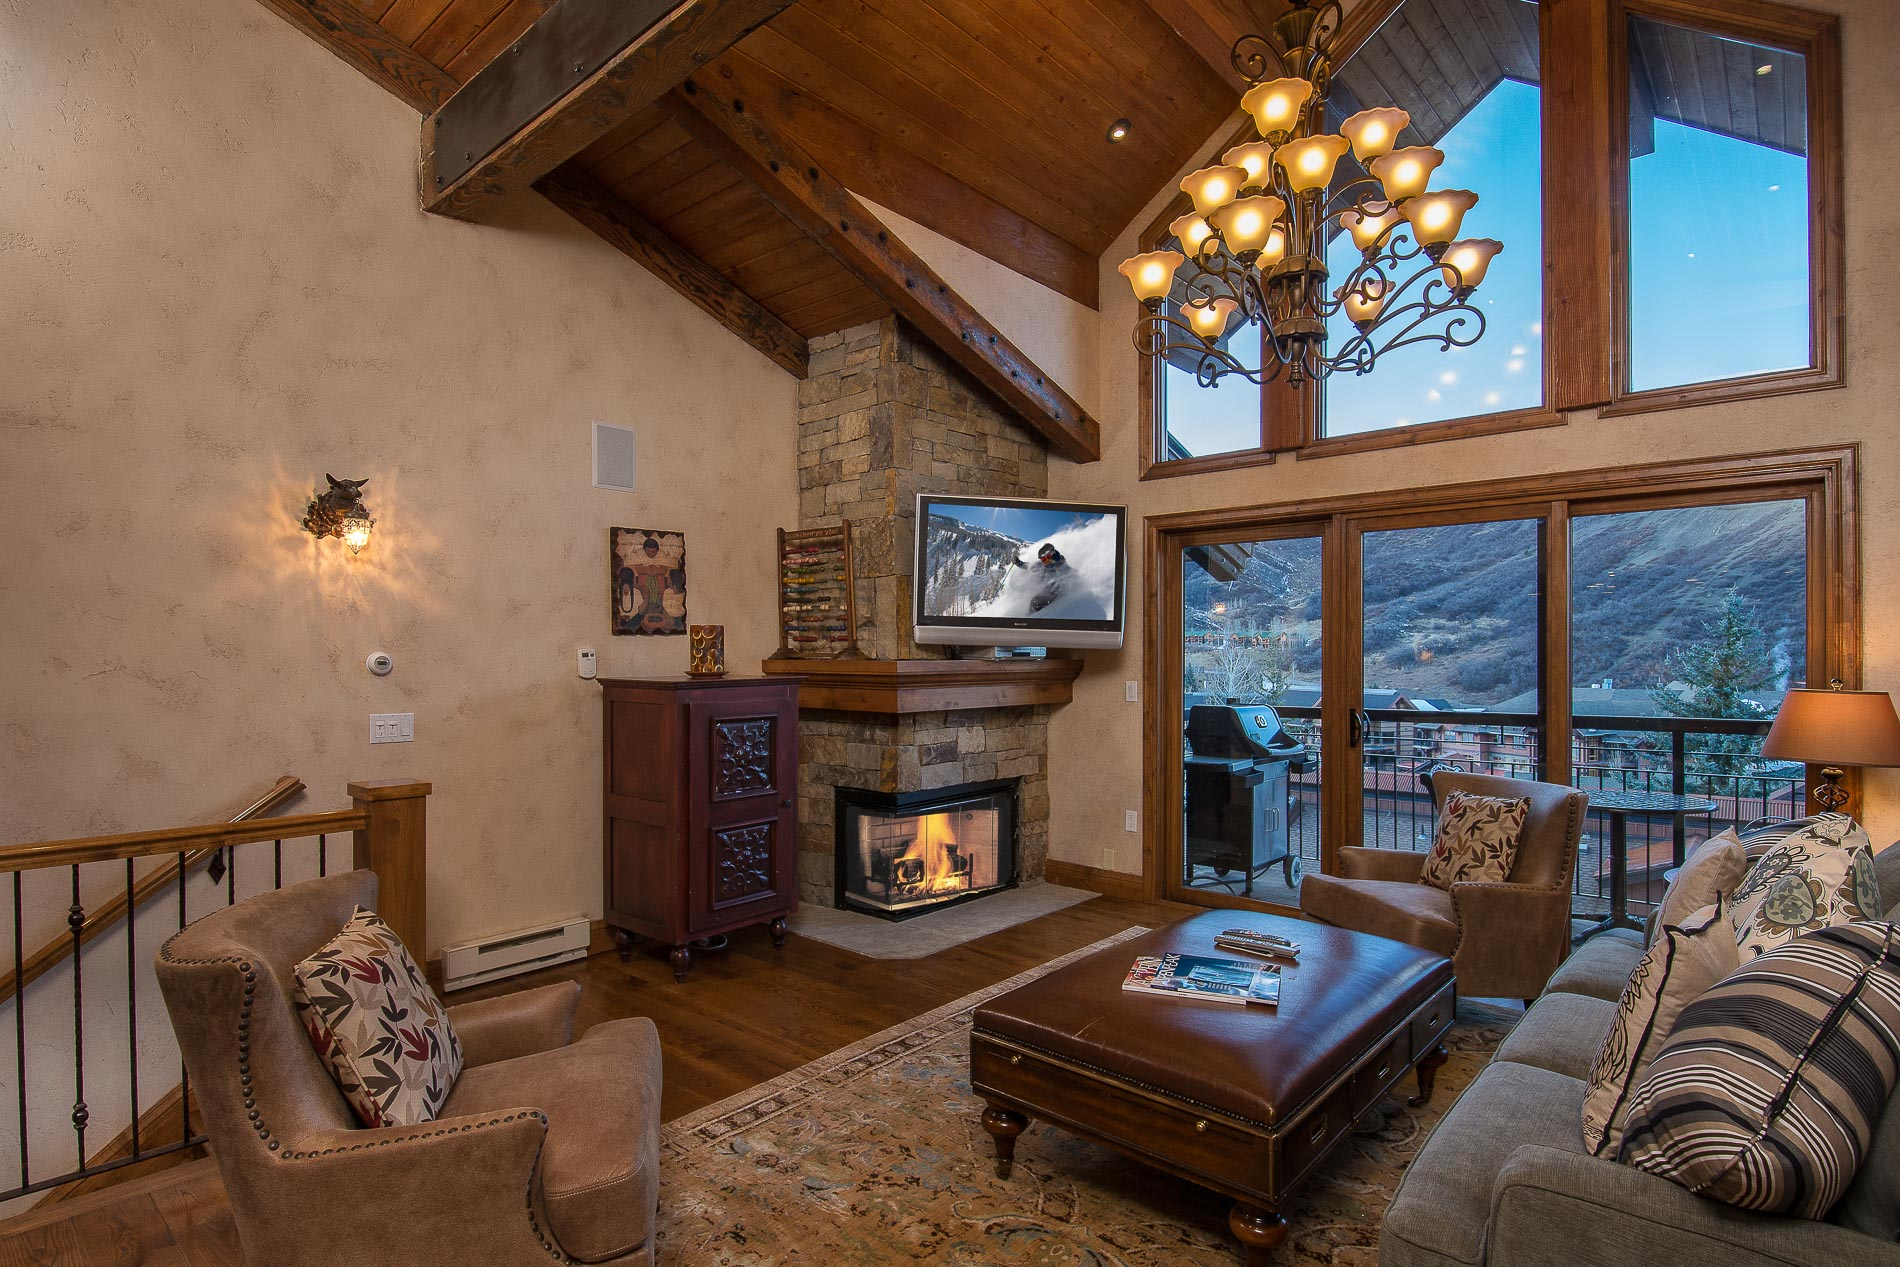 Townhouse for Sale at Easy Ski Access 400 Wood Road Unit 2209 Snowmass Village, Colorado 81615 United States